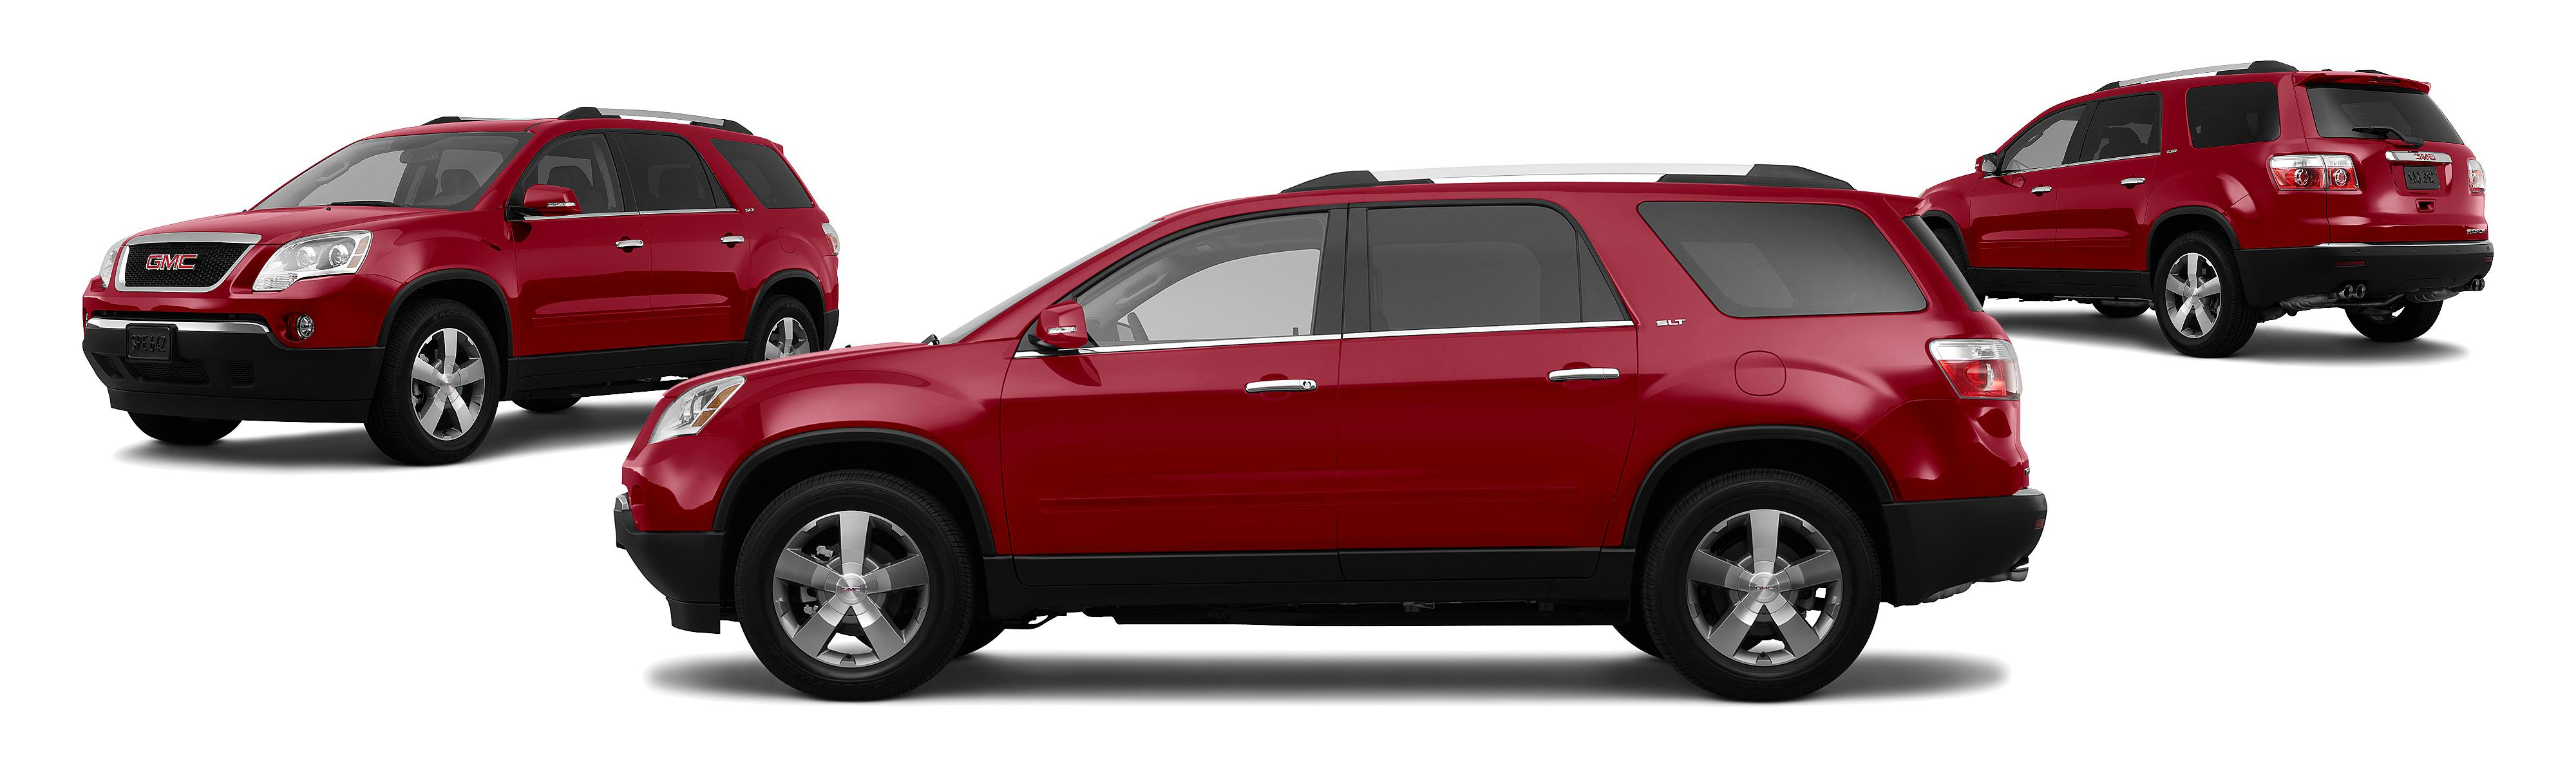 gmc share best download gallery image acadia sle and